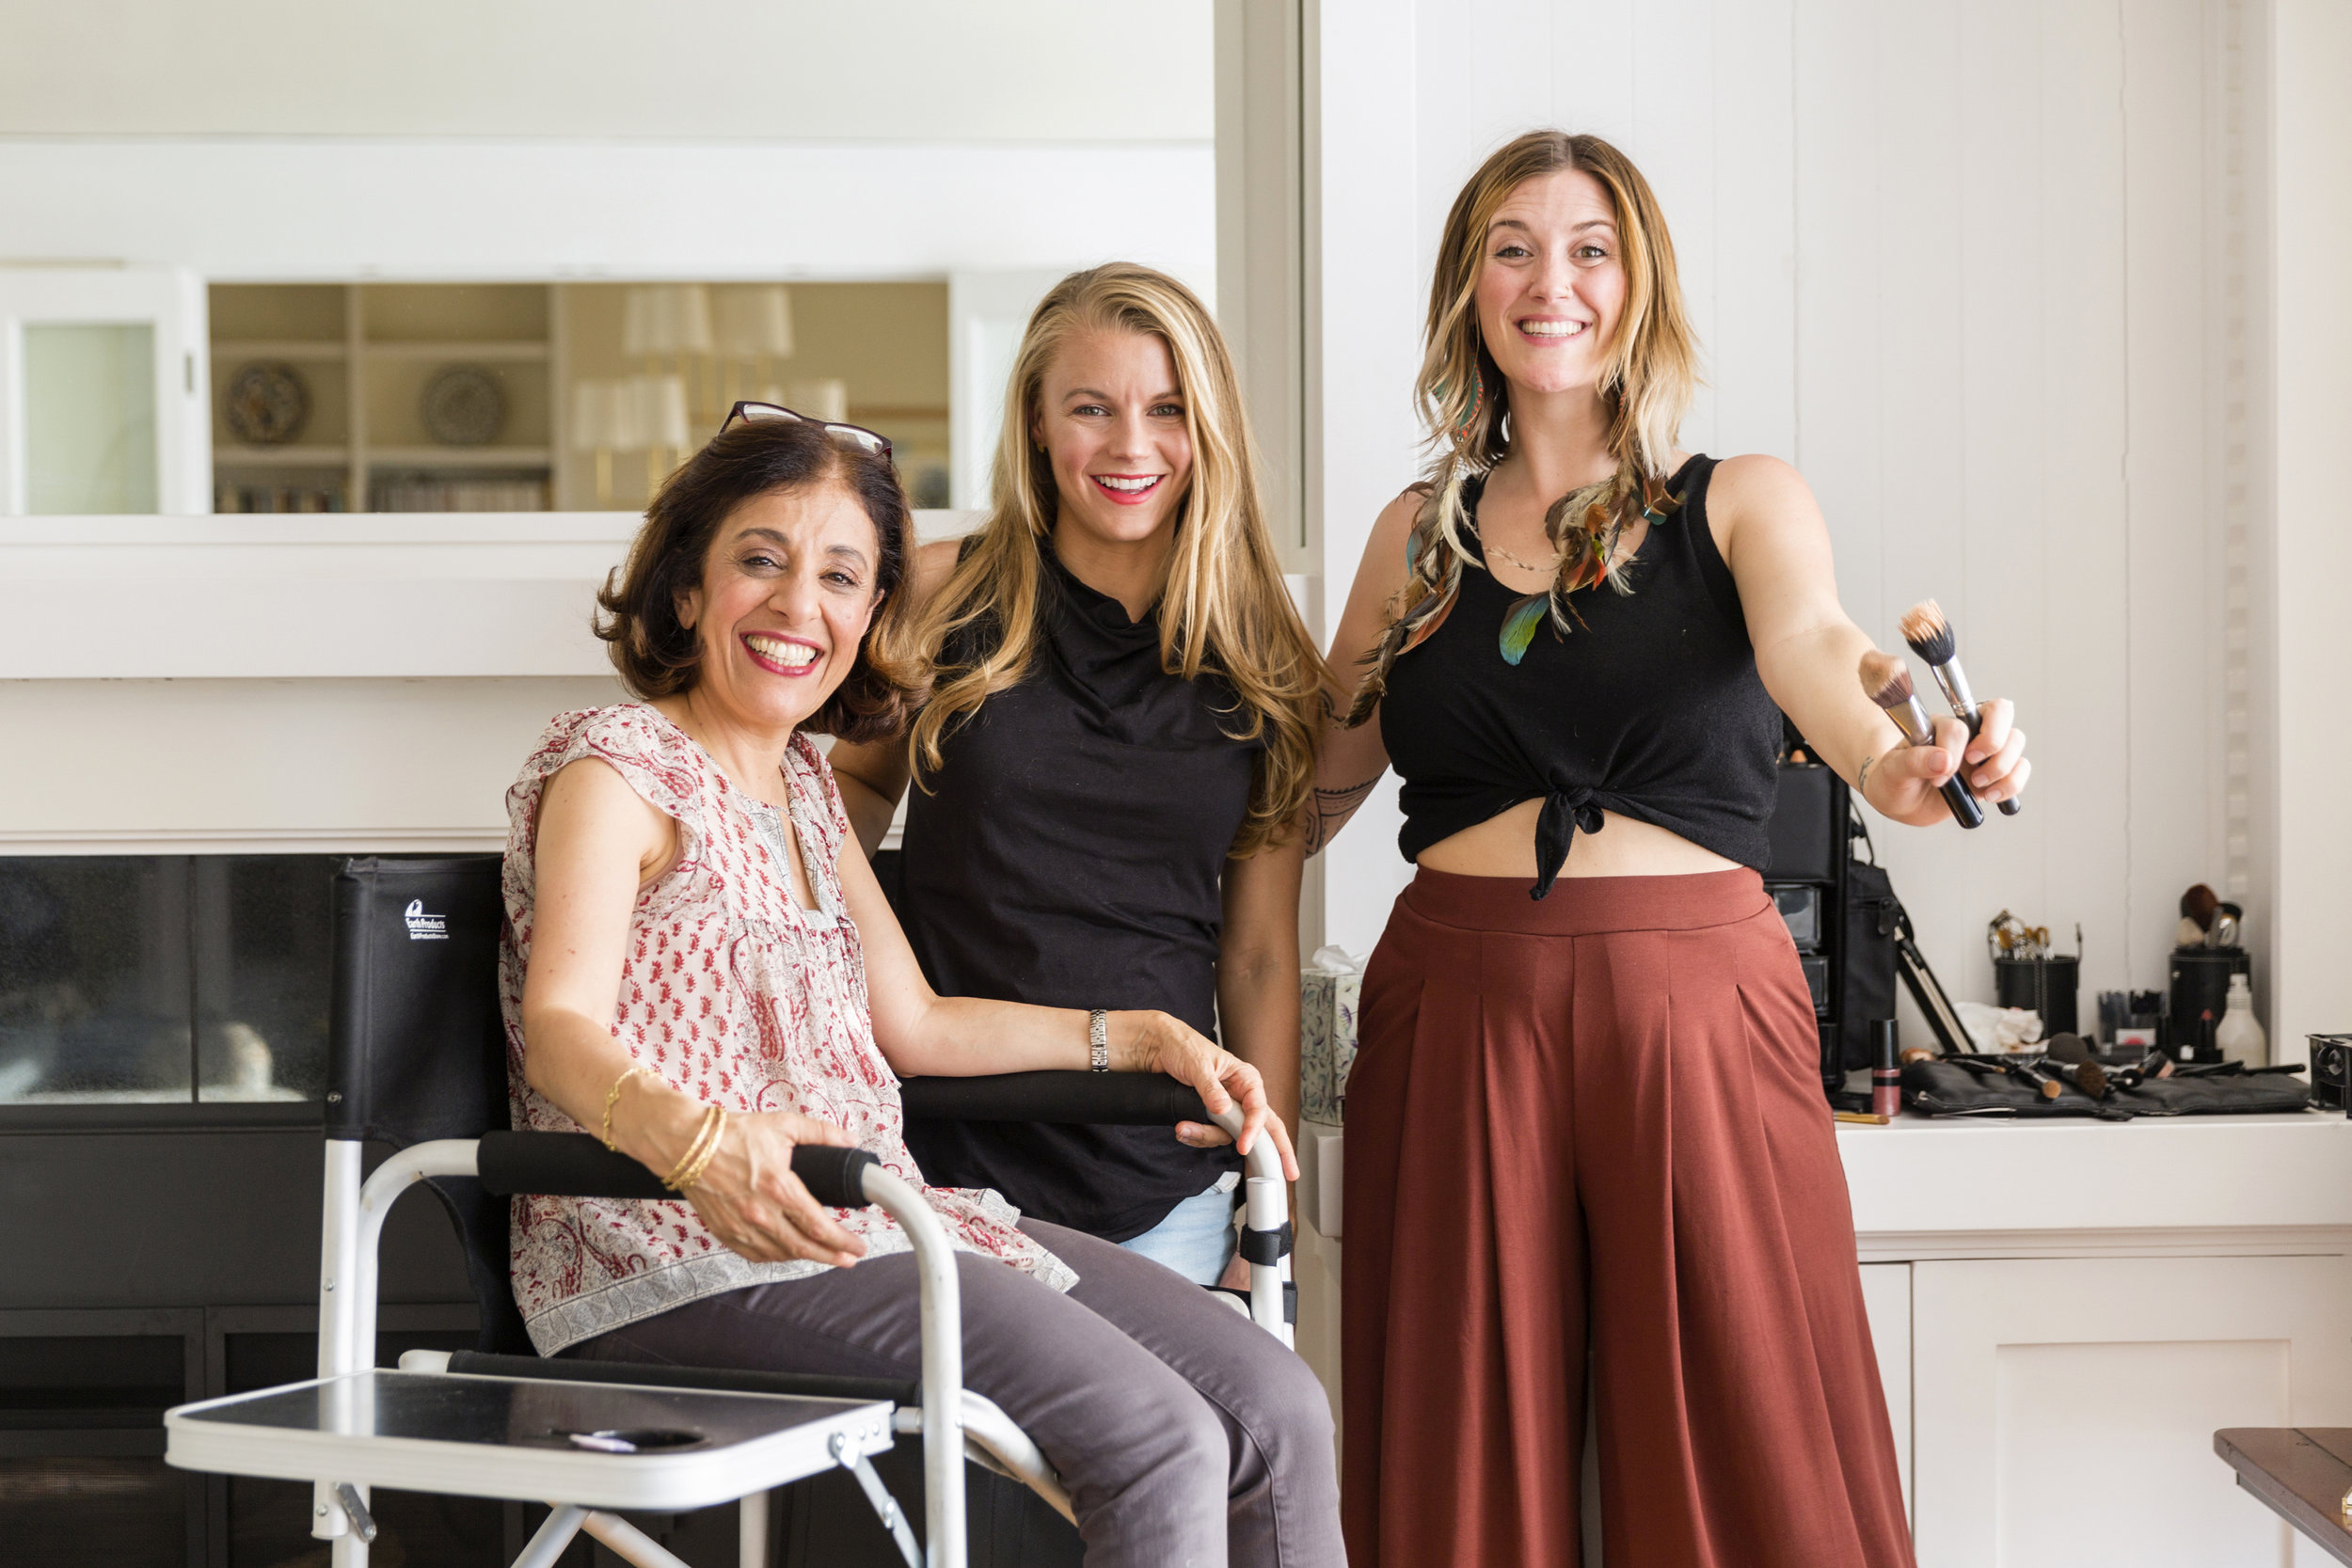 L-r: Jaleh Bisharat,Kimberly Shenk and Misty Spinney, Clean Makeup Artist